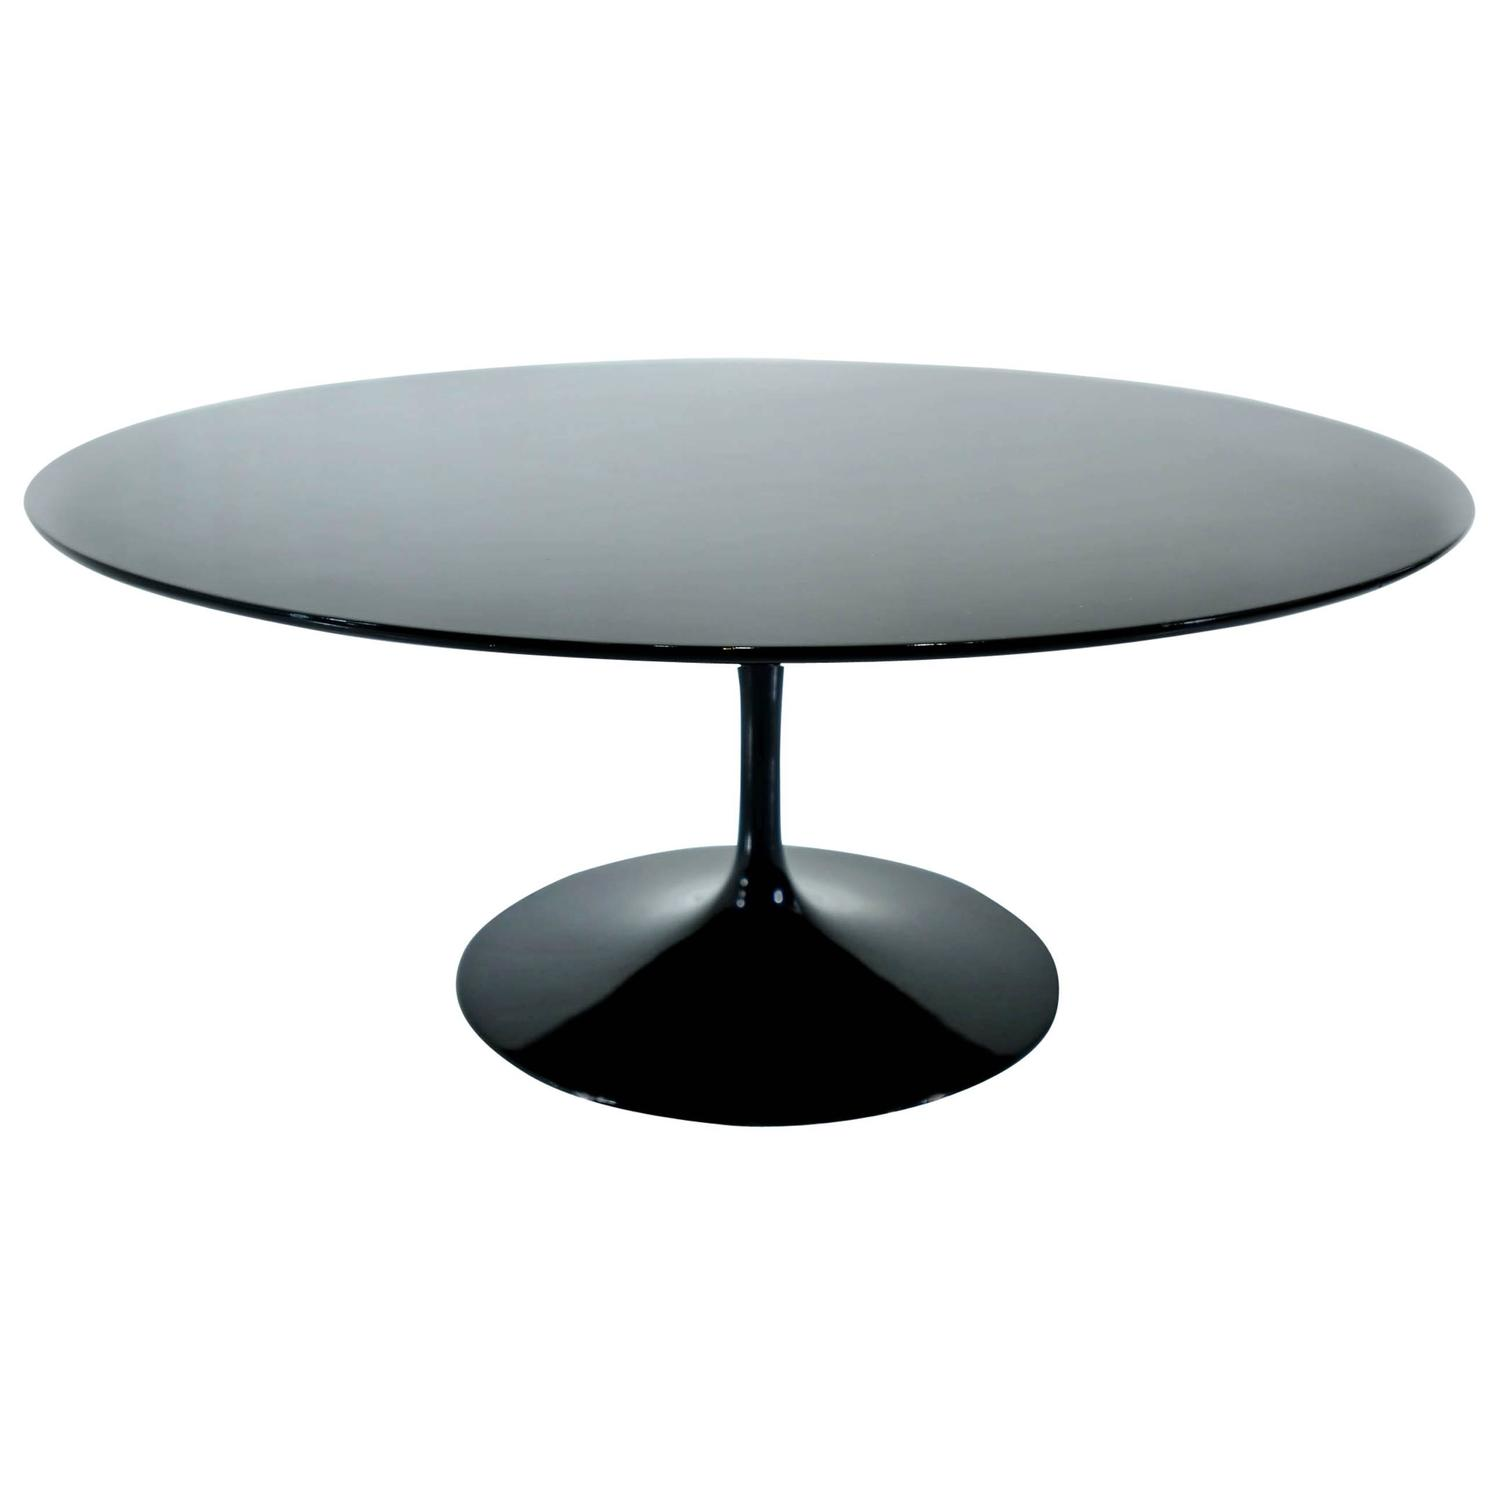 Eero Saarinen Tulip Round Coffee Table At 1stdibs